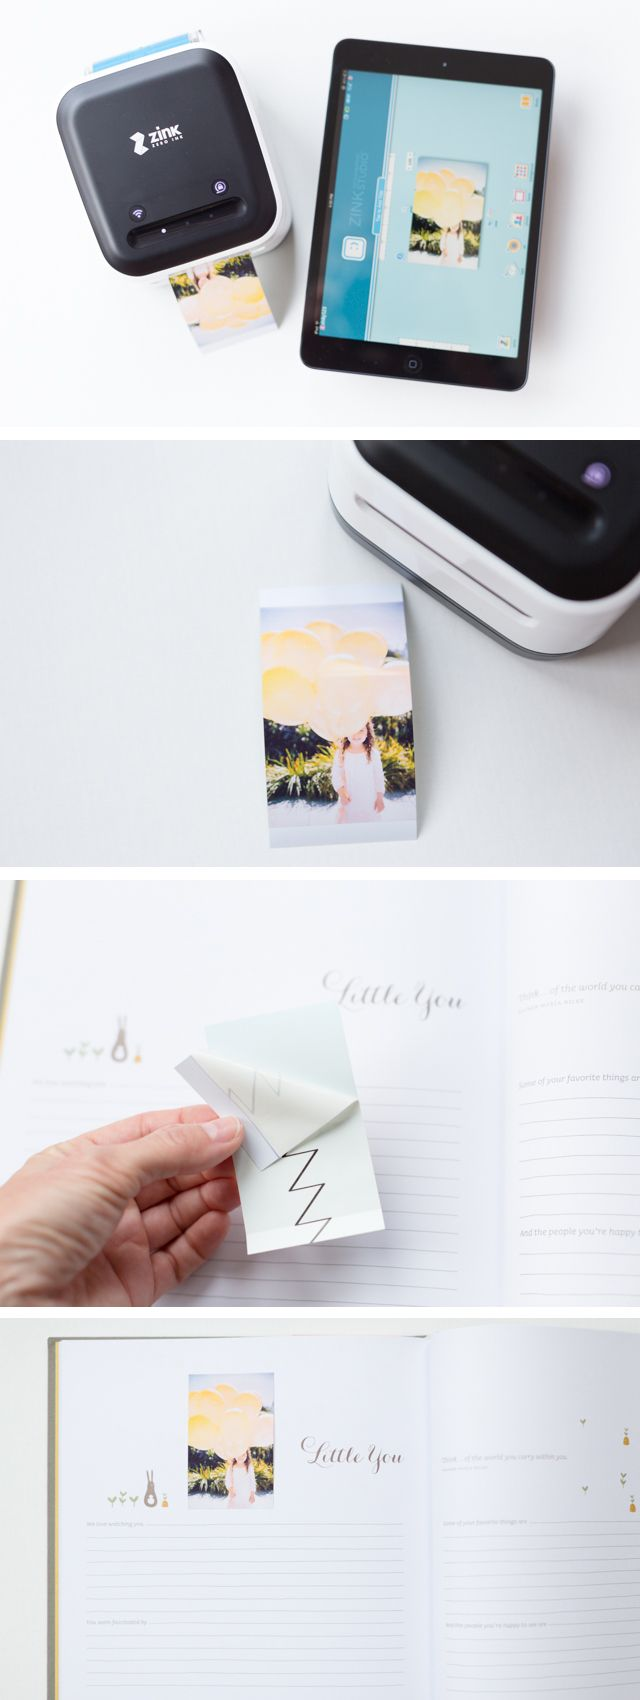 Wireless and mobile smart app printer that will print your instagram and smart phone photos without using ink - very cool.  Love this idea of using it for a gratitude journal.